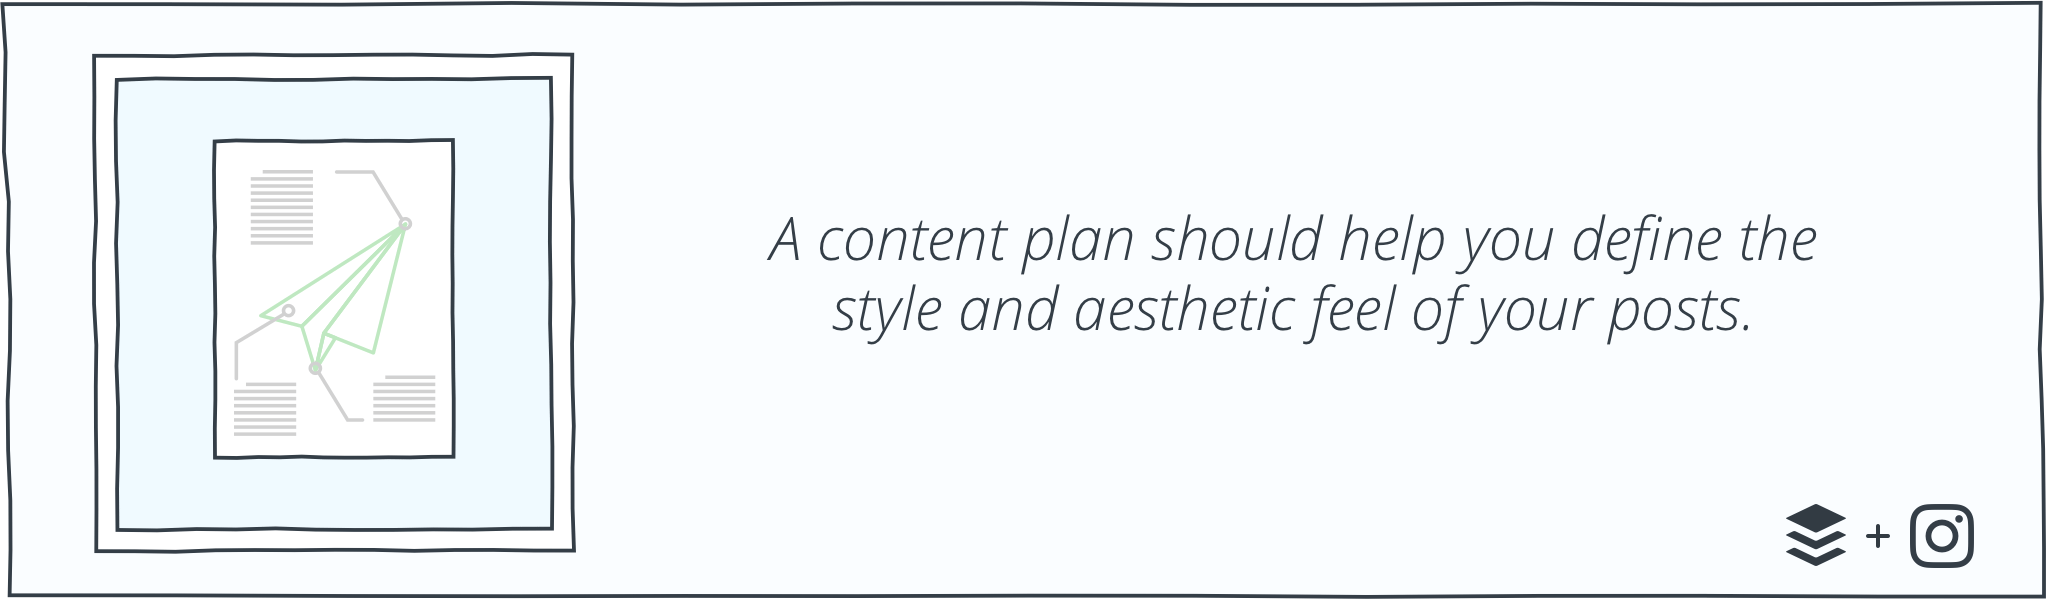 content-plan@2x